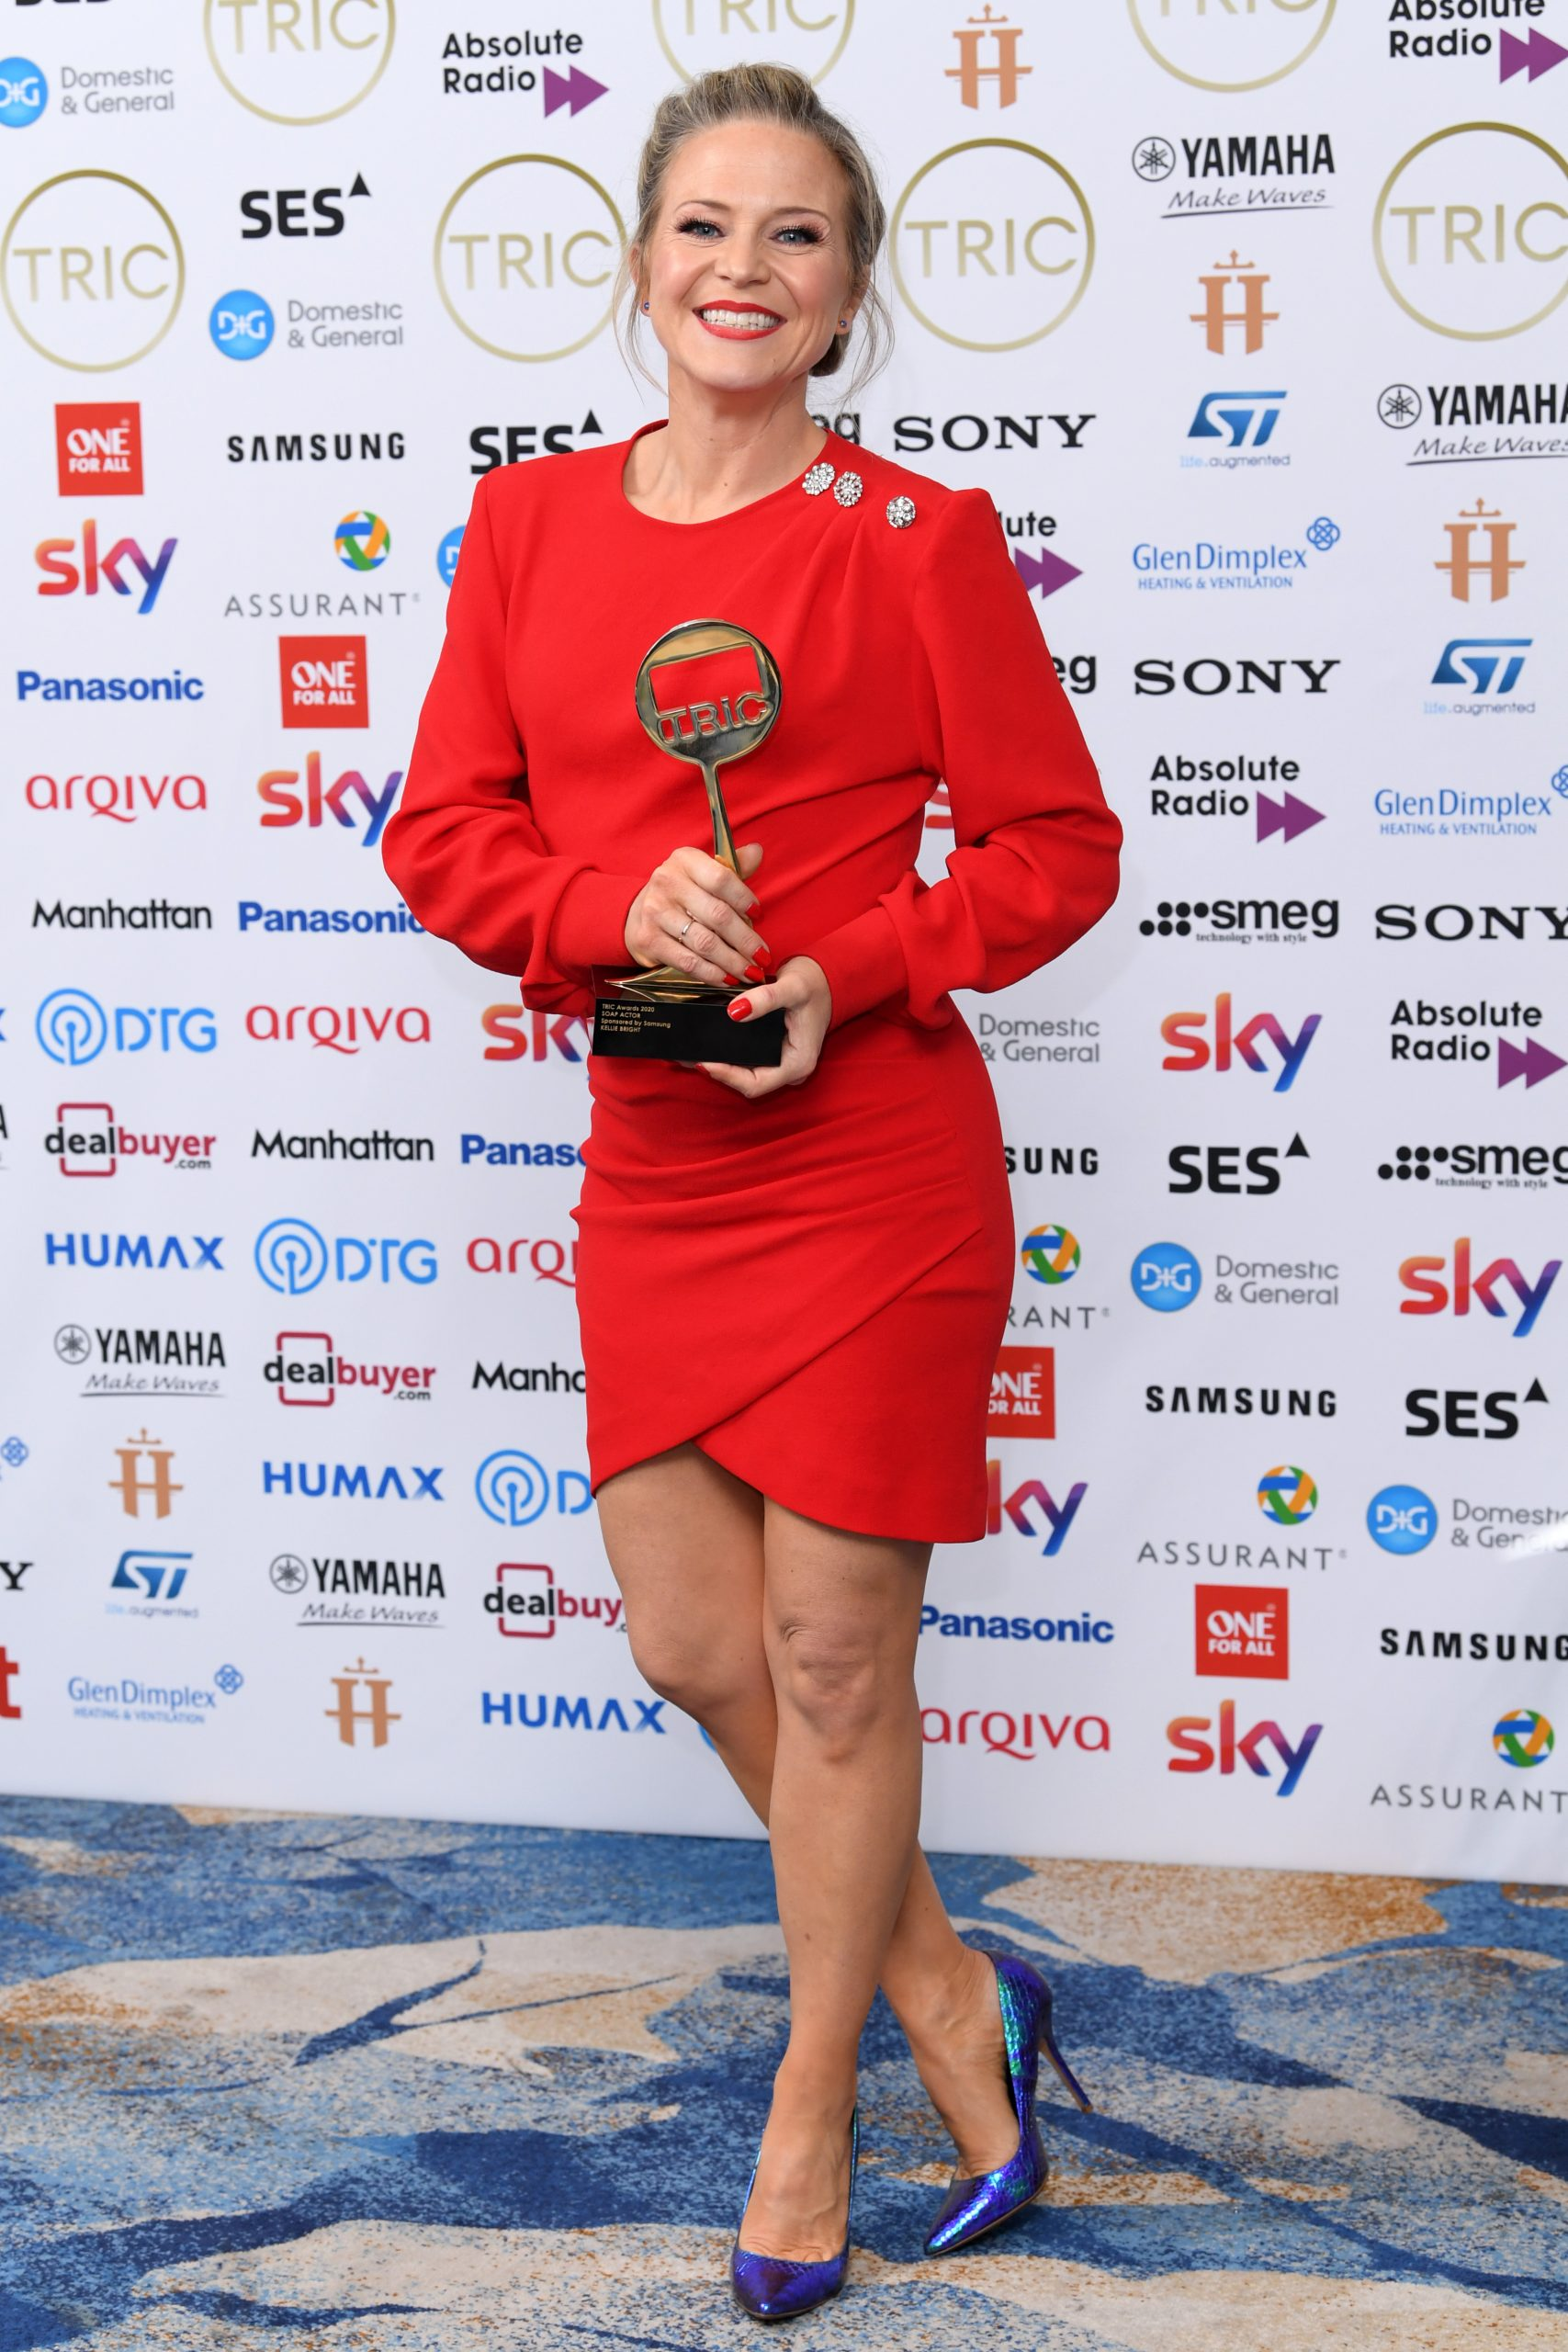 Mandatory Credit: Photo by David Fisher/Shutterstock (10578624l) Kellie Bright - Soap Actor The TRIC Awards, Press Room, Grosvenor House, London, UK - 10 Mar 2020